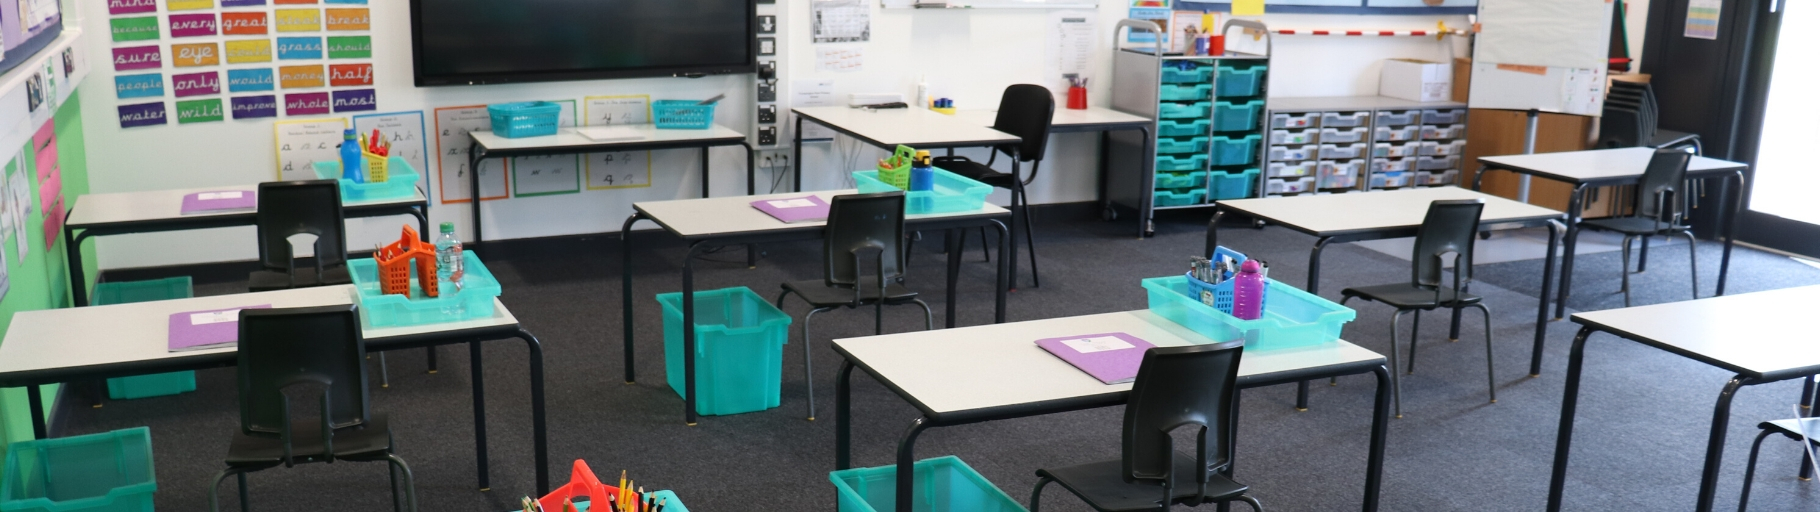 Tackling the Covid Classroom Dilemma